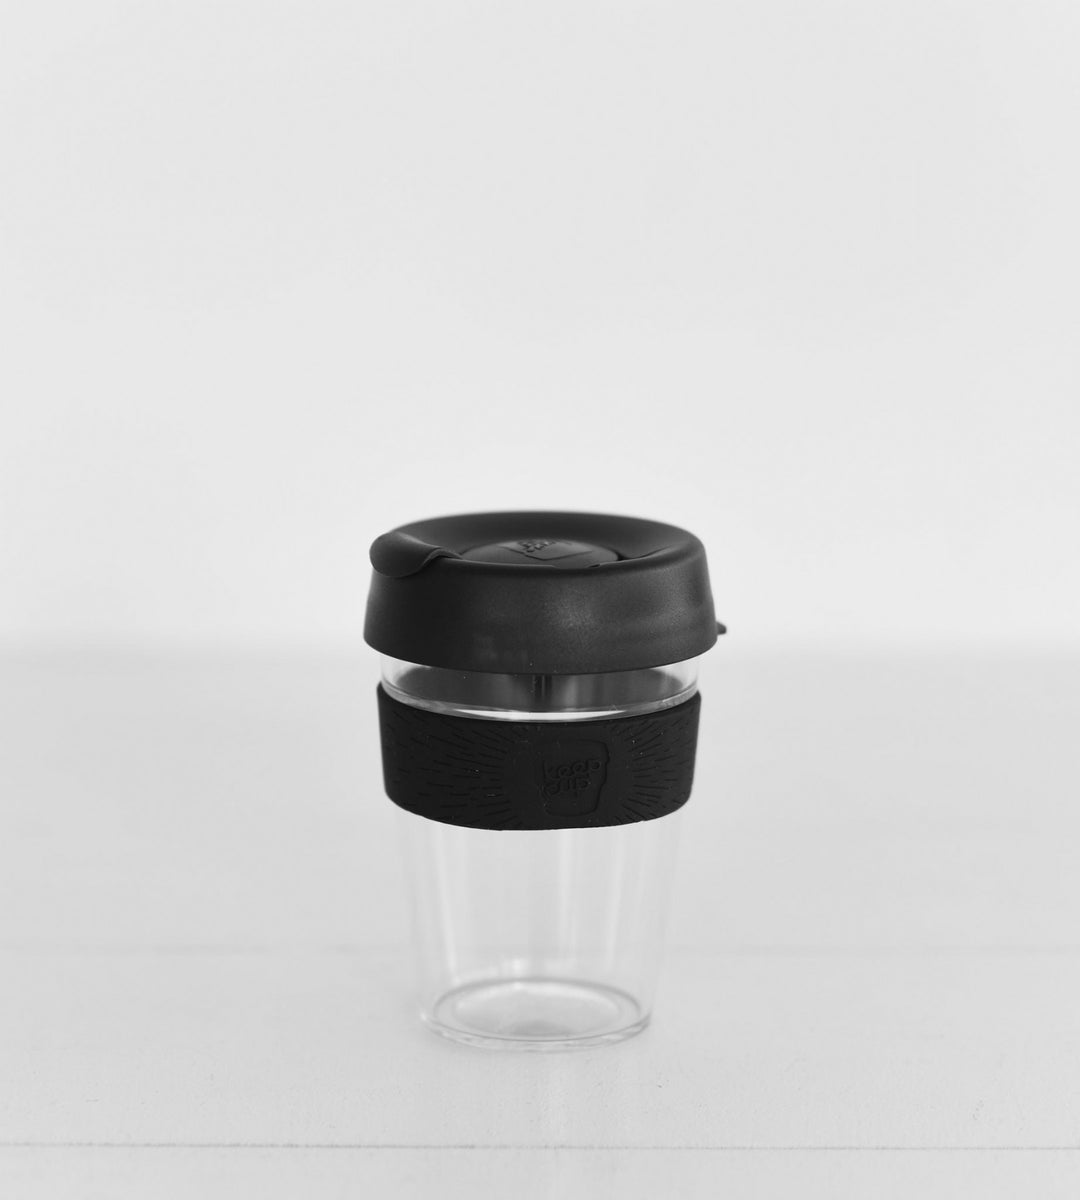 The KeepCup Original Clear 340ml size in Origin